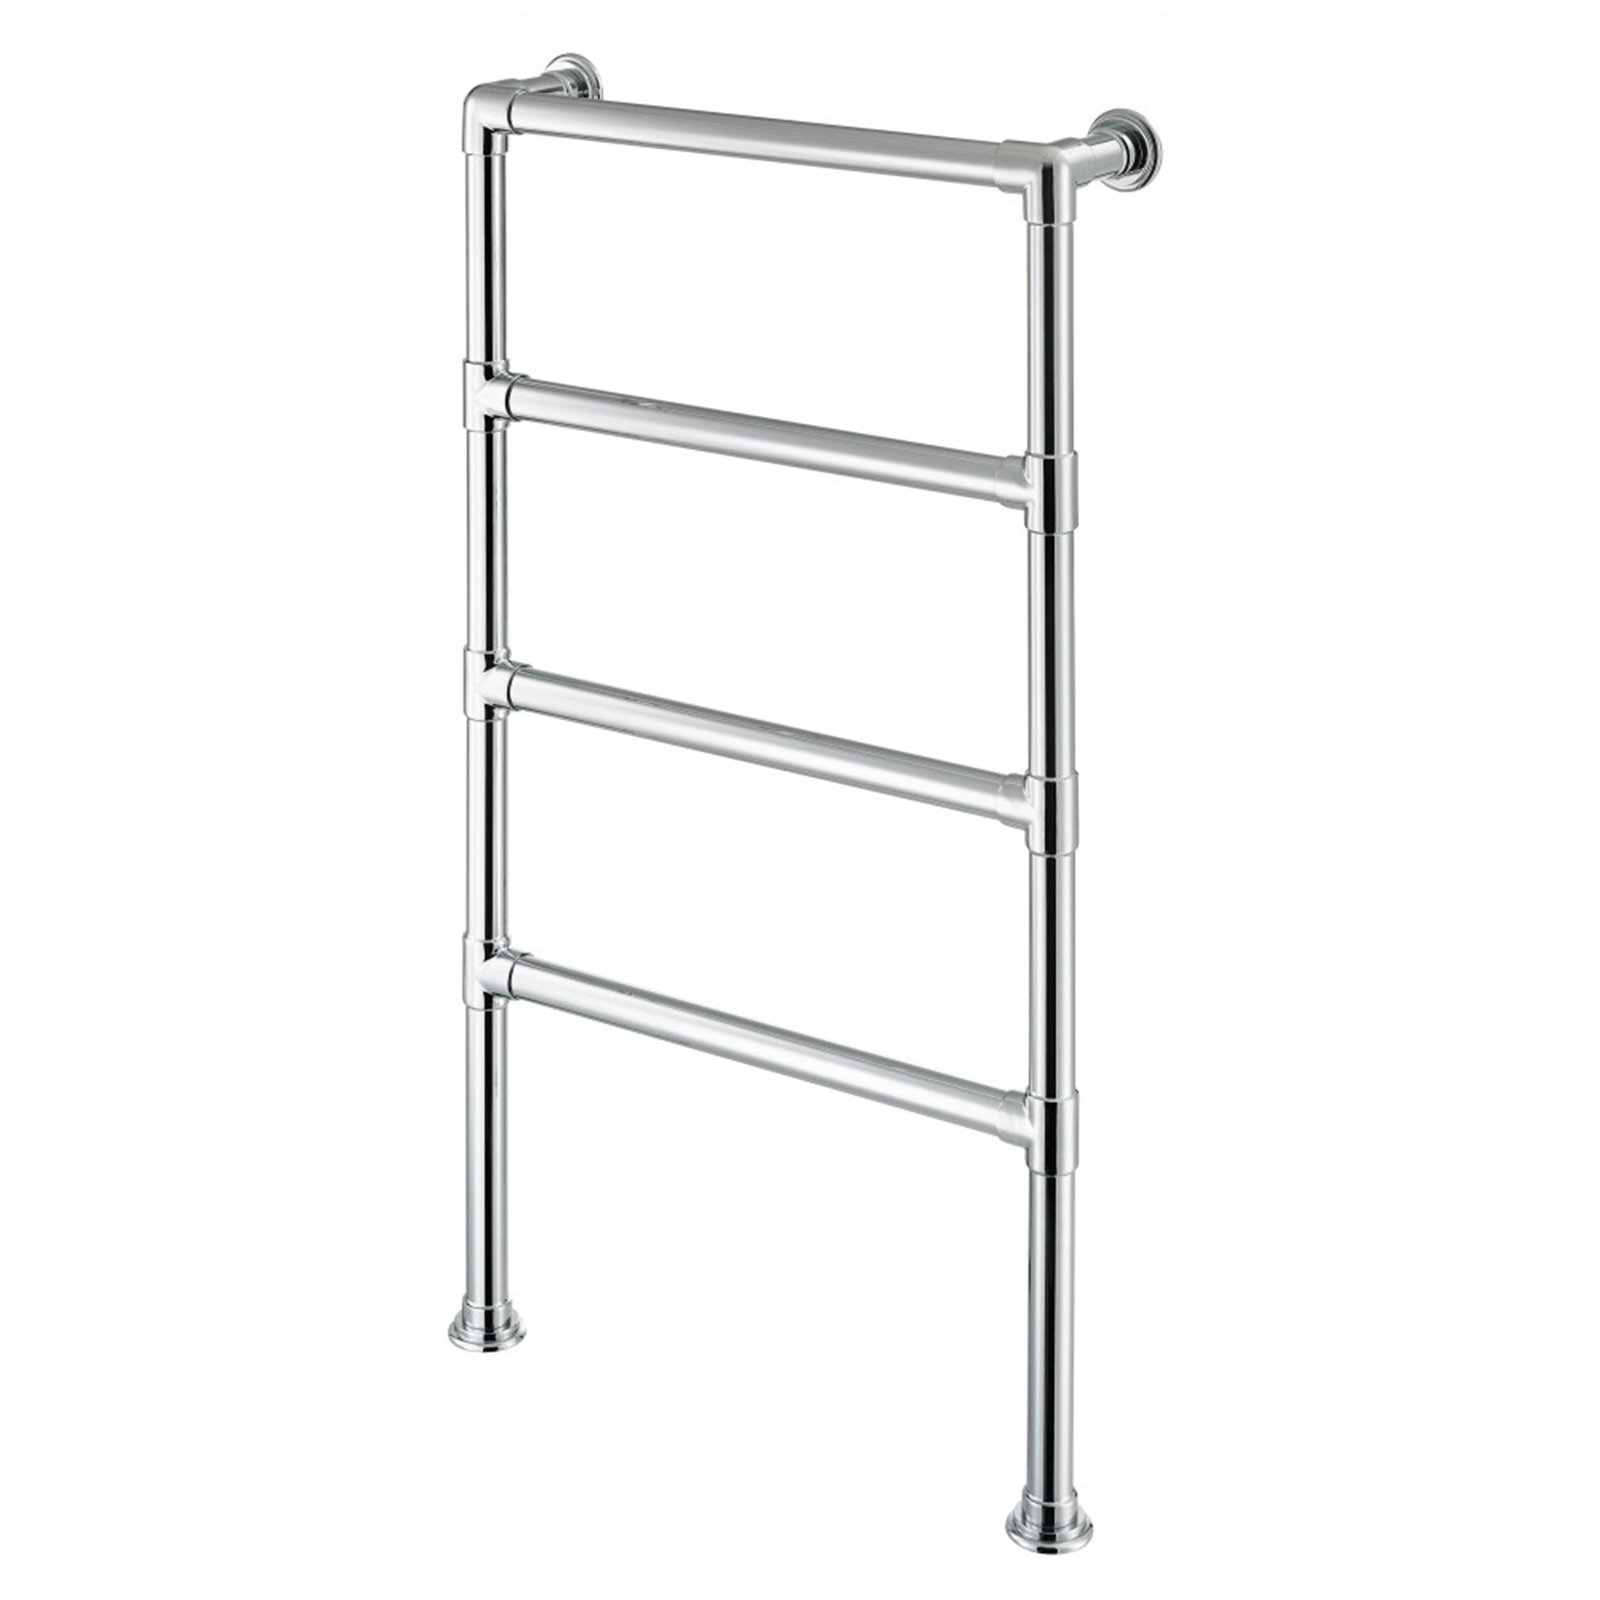 Floor Standing Electric 4 Rail Towel Warmer 32mm Tube Image